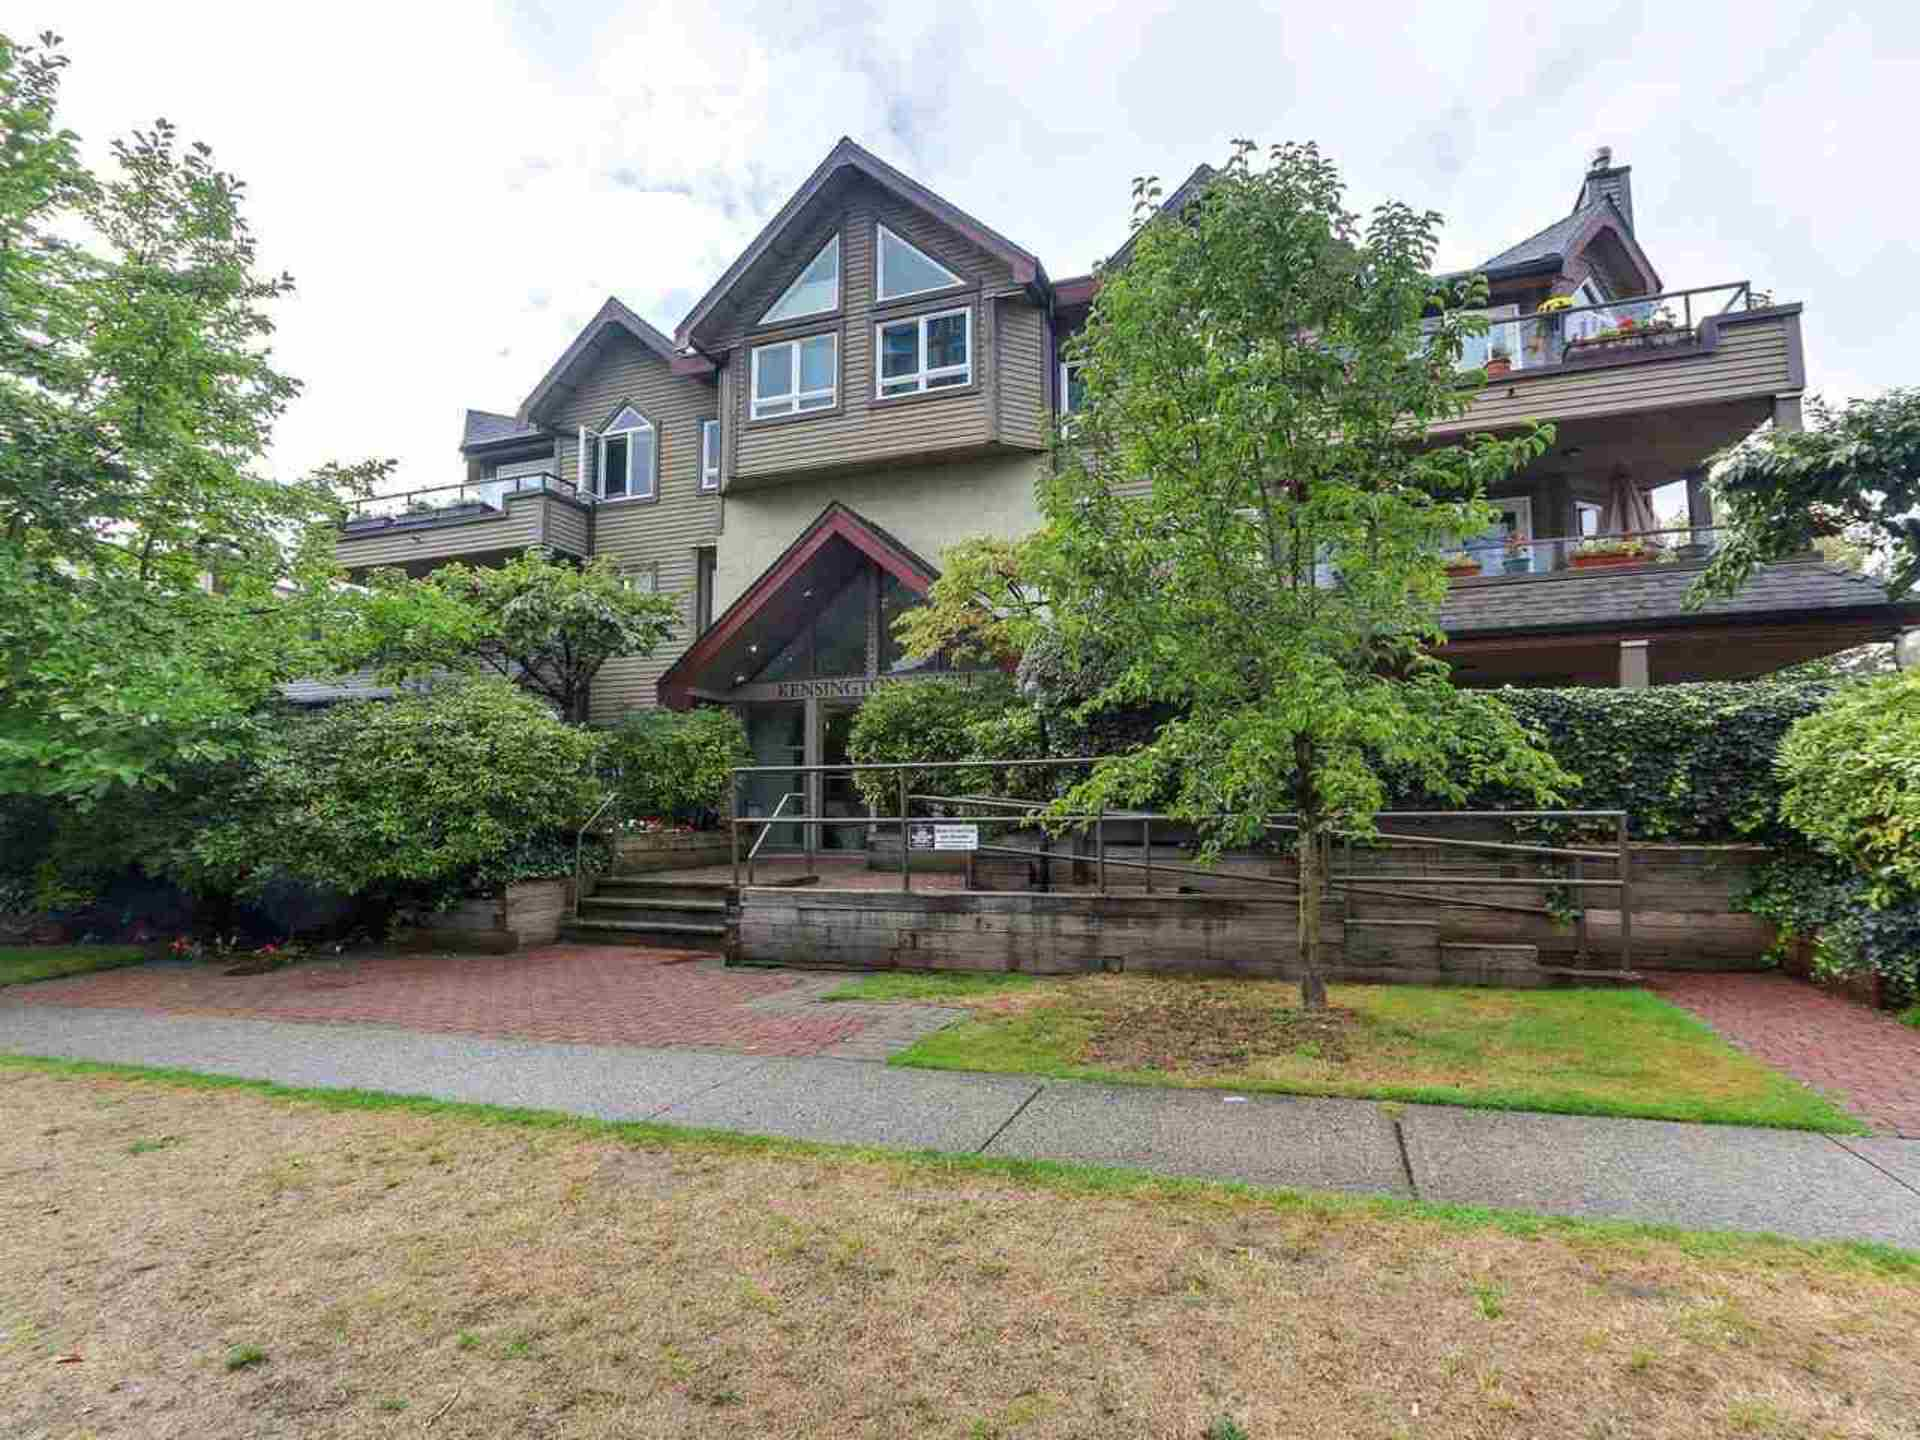 1535-chesterfield-avenue-central-lonsdale-north-vancouver-01 at 306 - 1535 Chesterfield Avenue, Central Lonsdale, North Vancouver